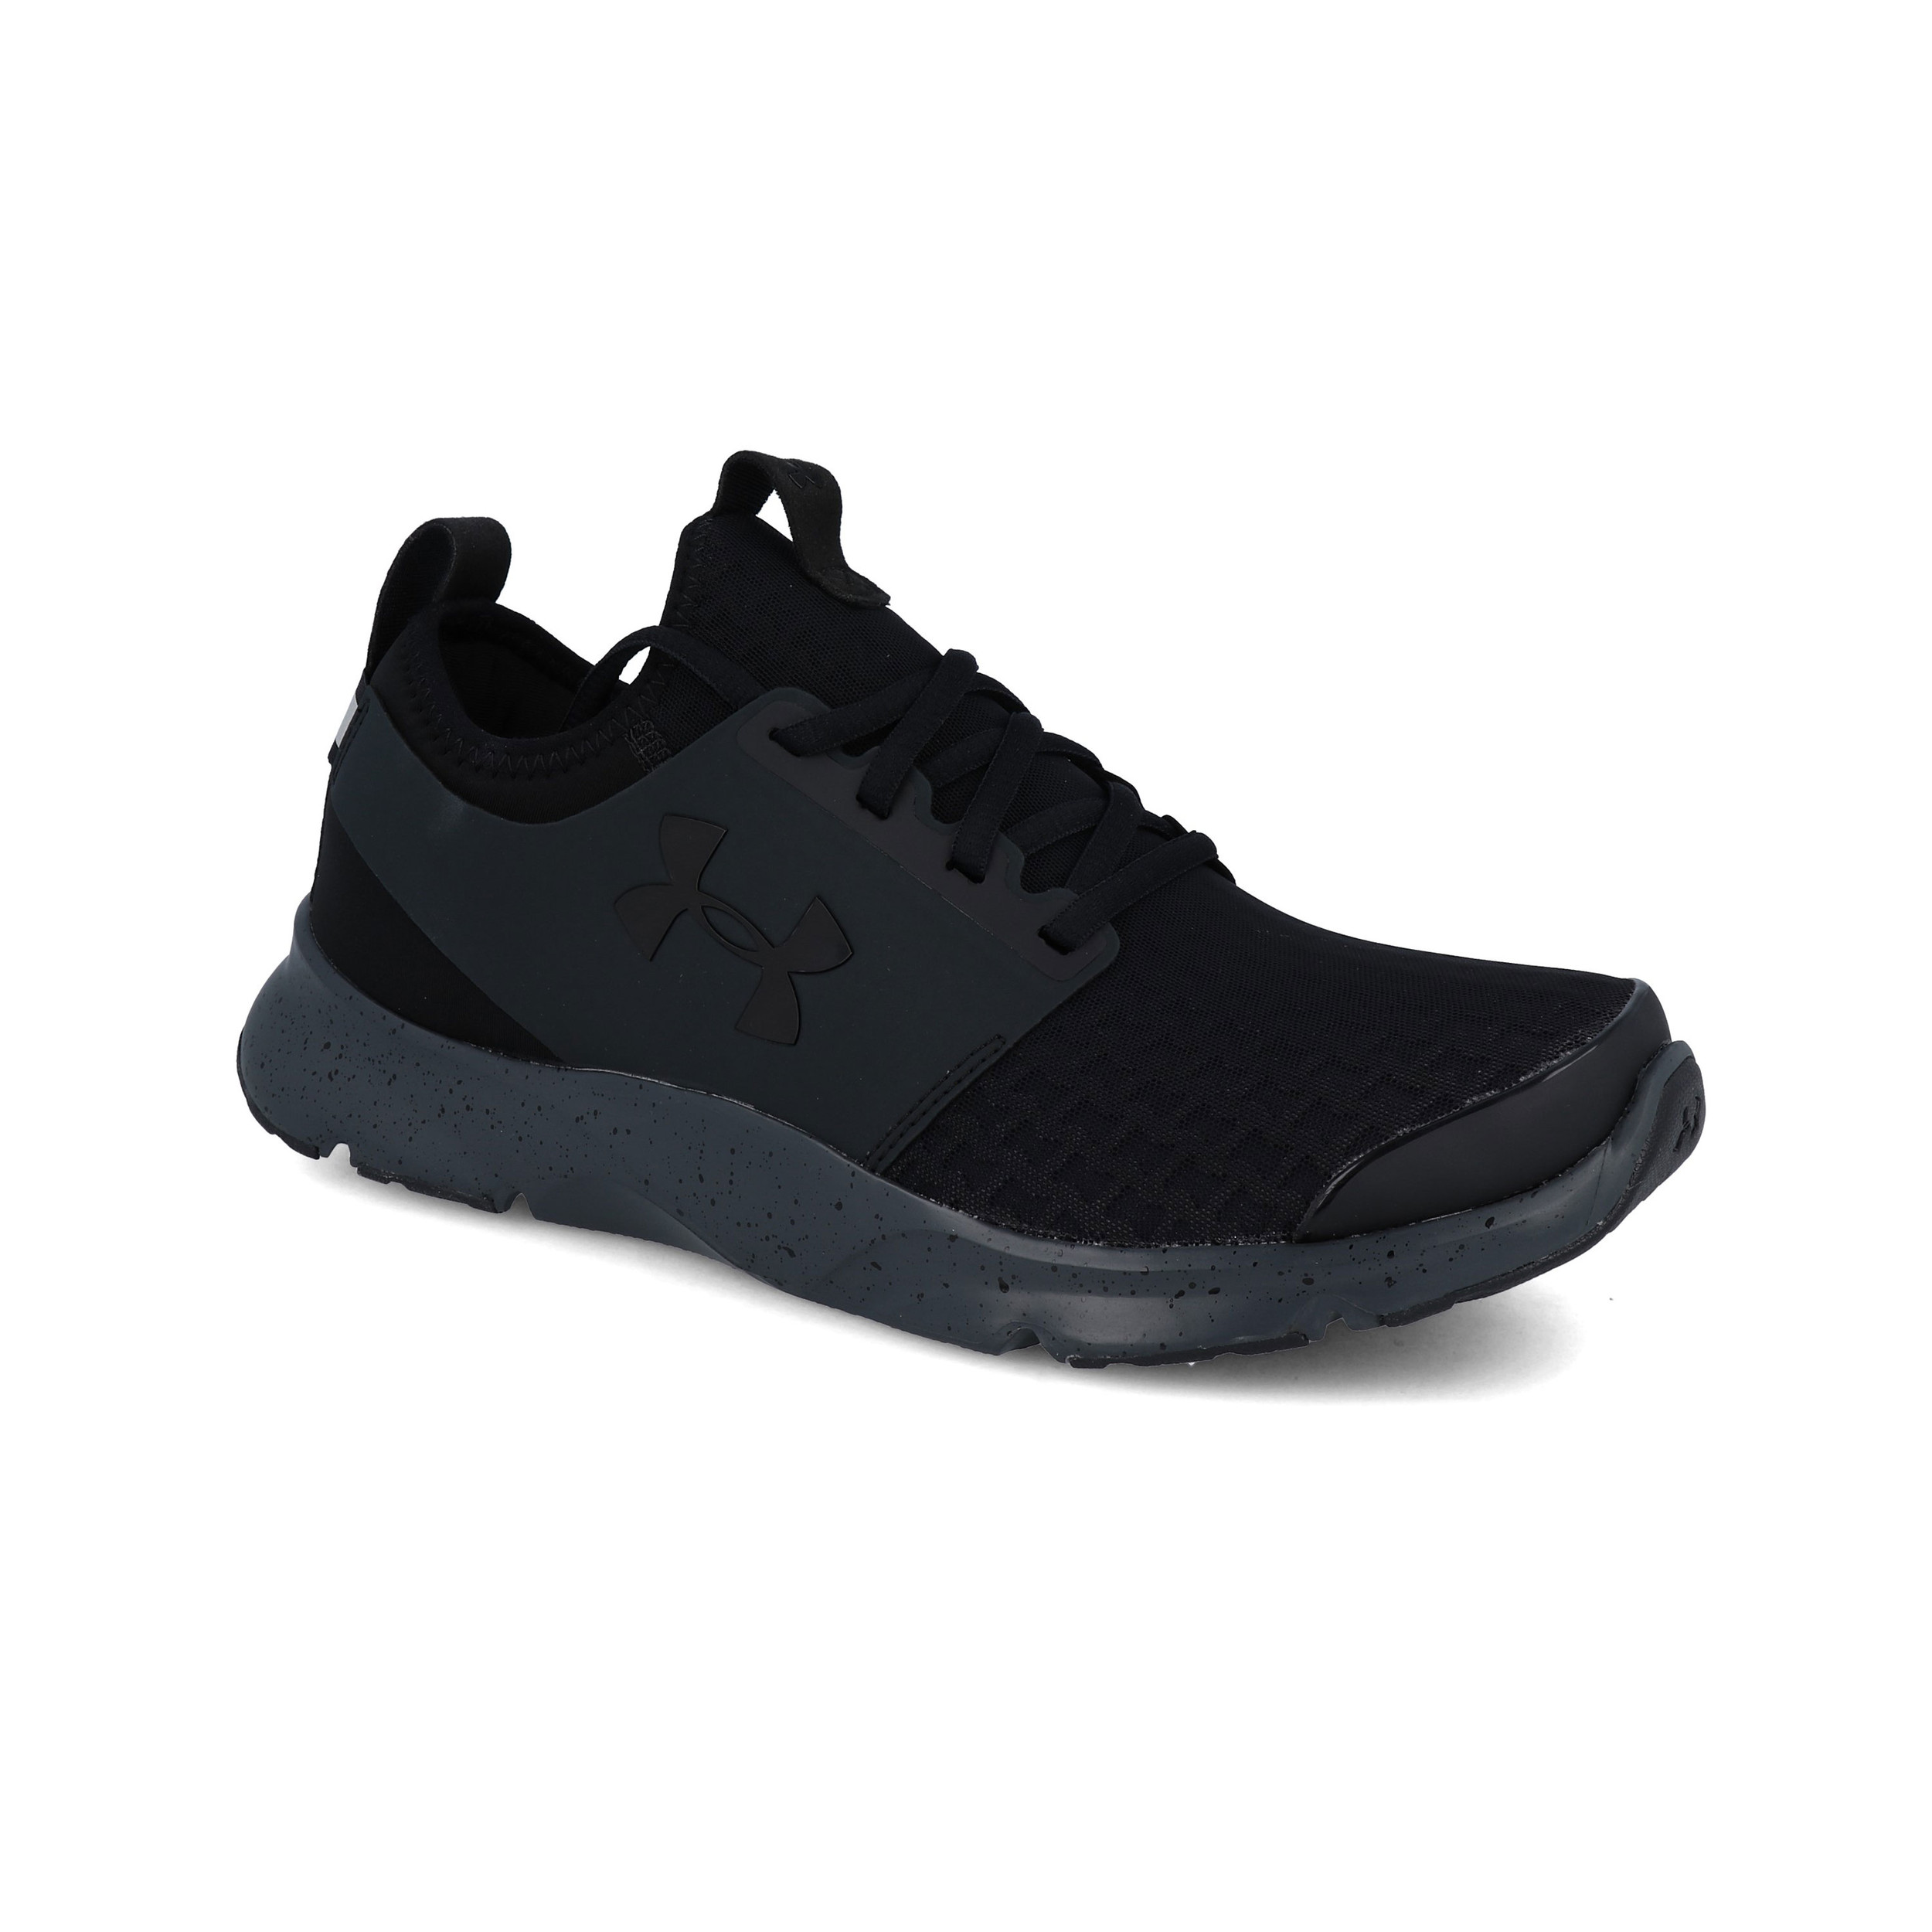 Armour-Para-Hombre-Negro-Drift-correr-Under-Shoes-Trainers-Deportes-Transpirable miniatura 5